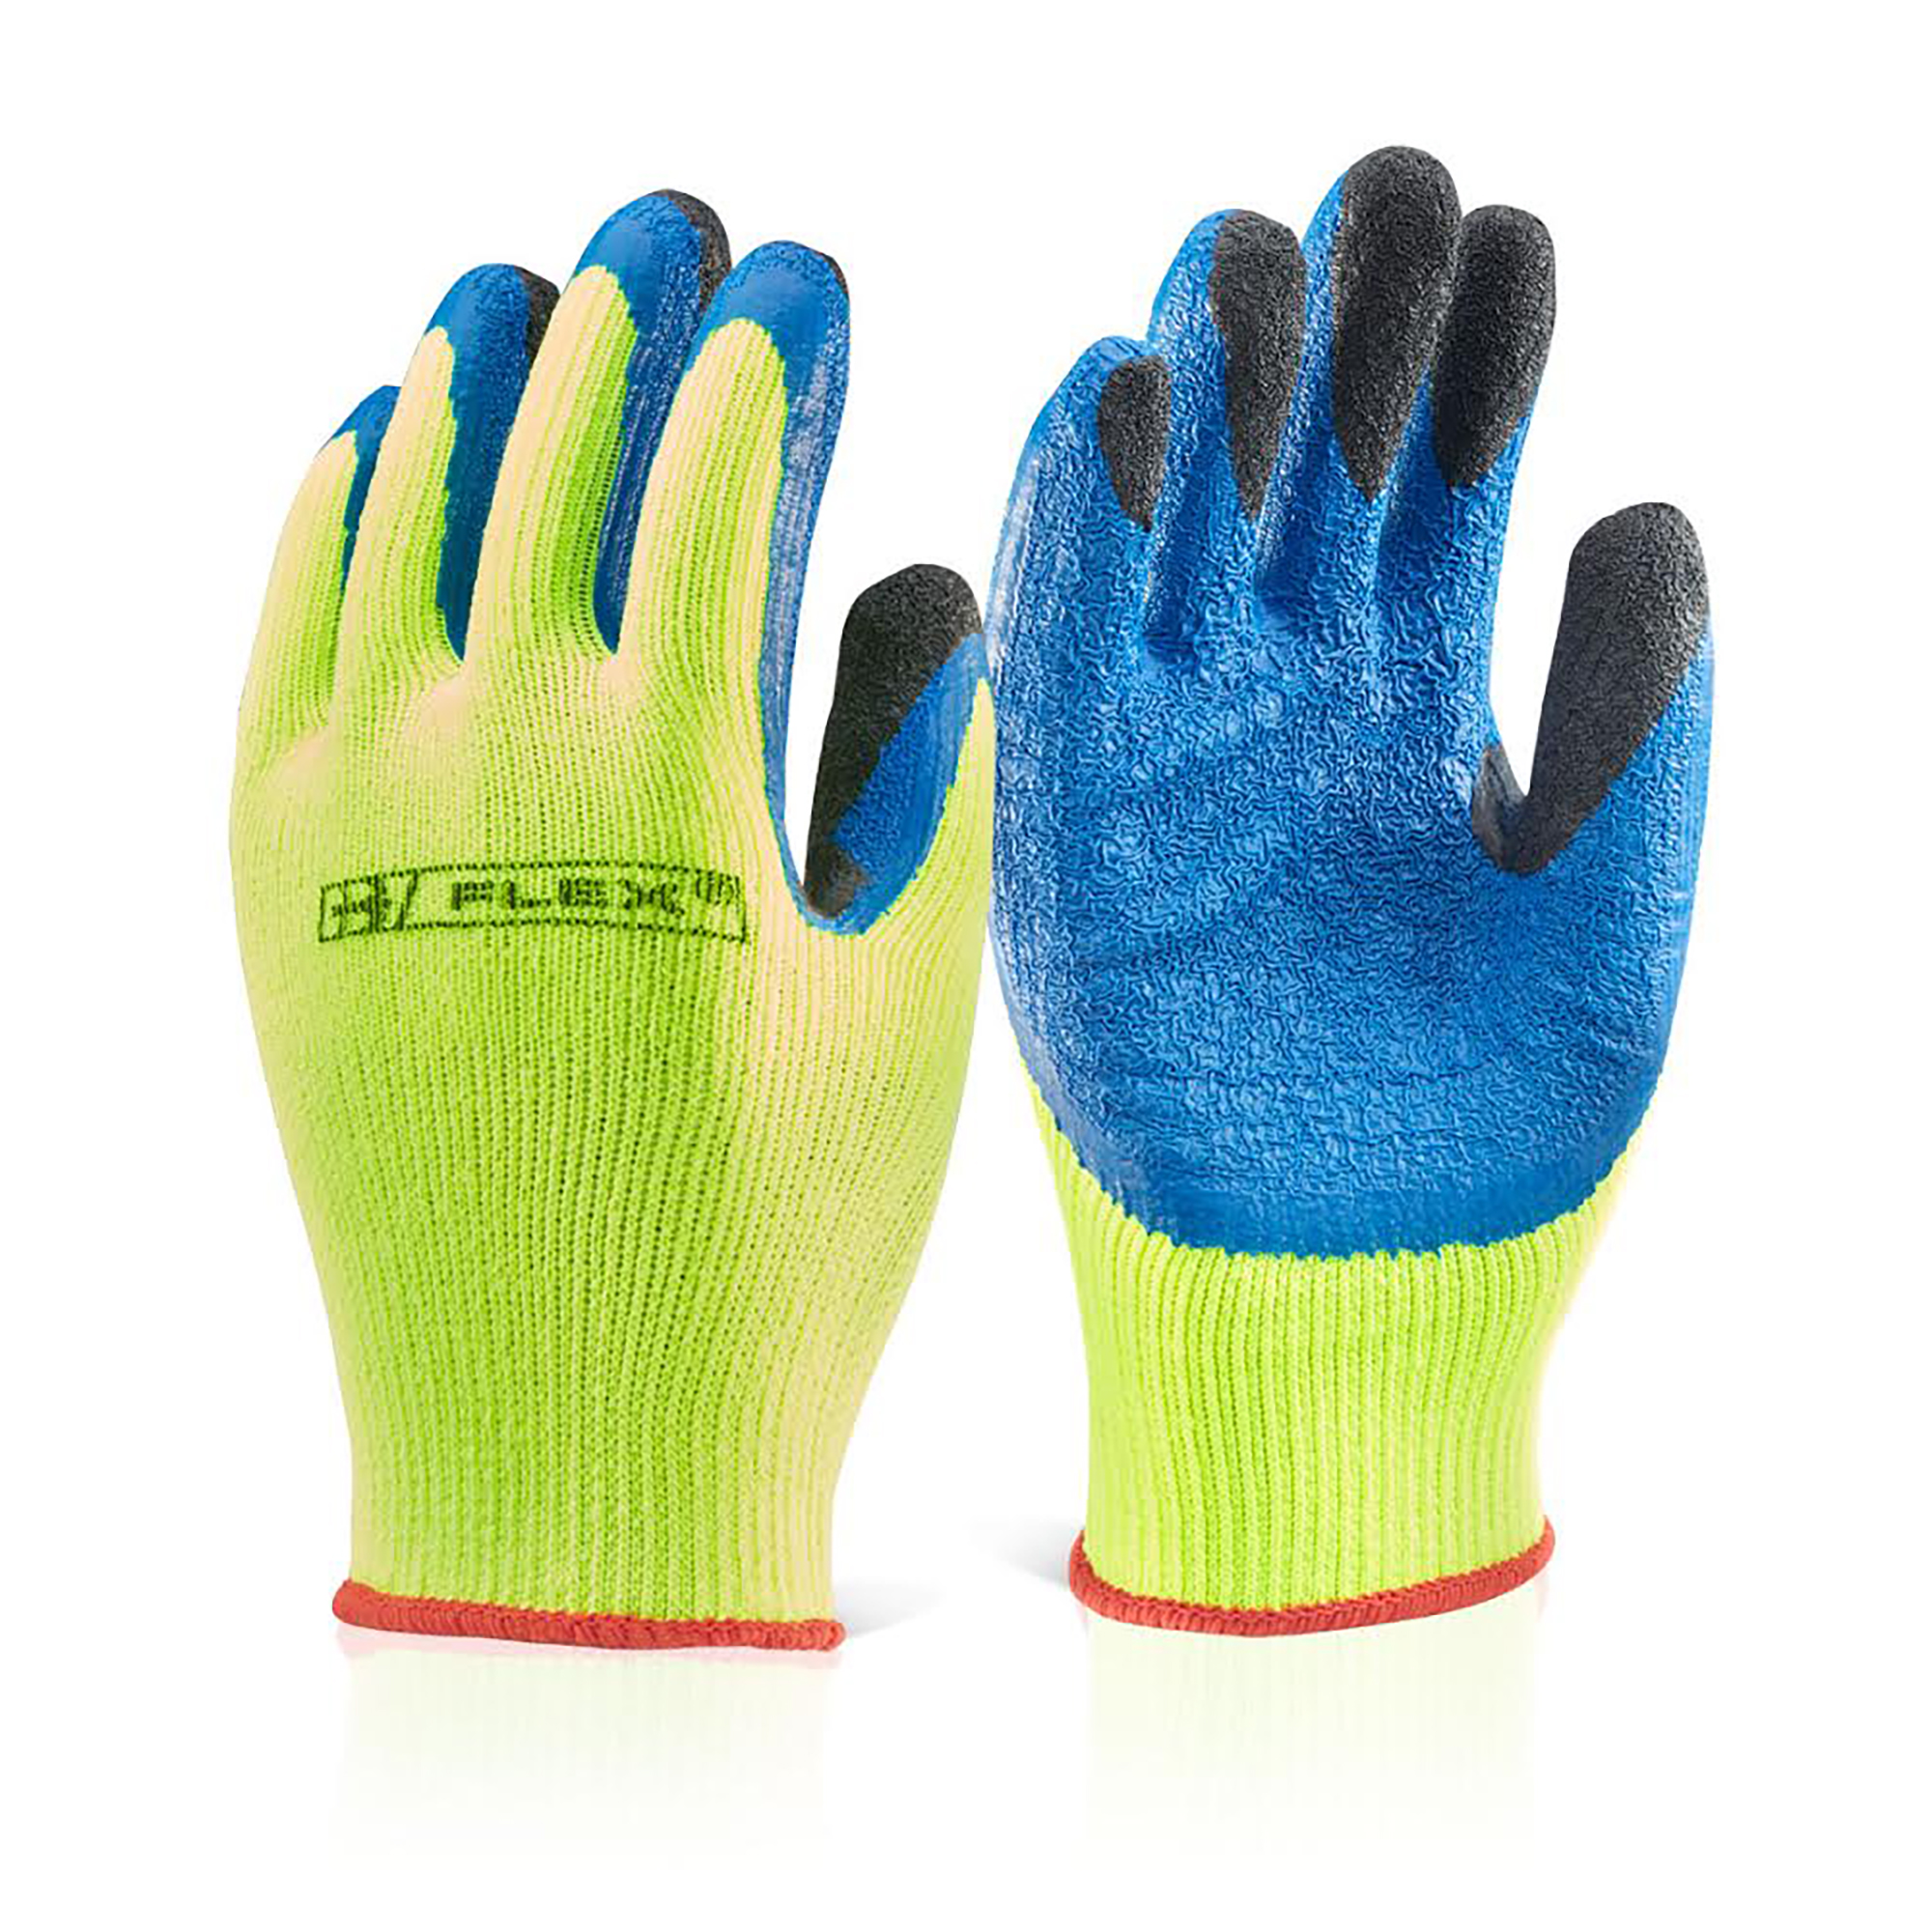 B-Flex Latex Thermo-Star Fully Dipped Glove Yellow Size 10 Ref BF3SY10 Up to 3 Day Leadtime